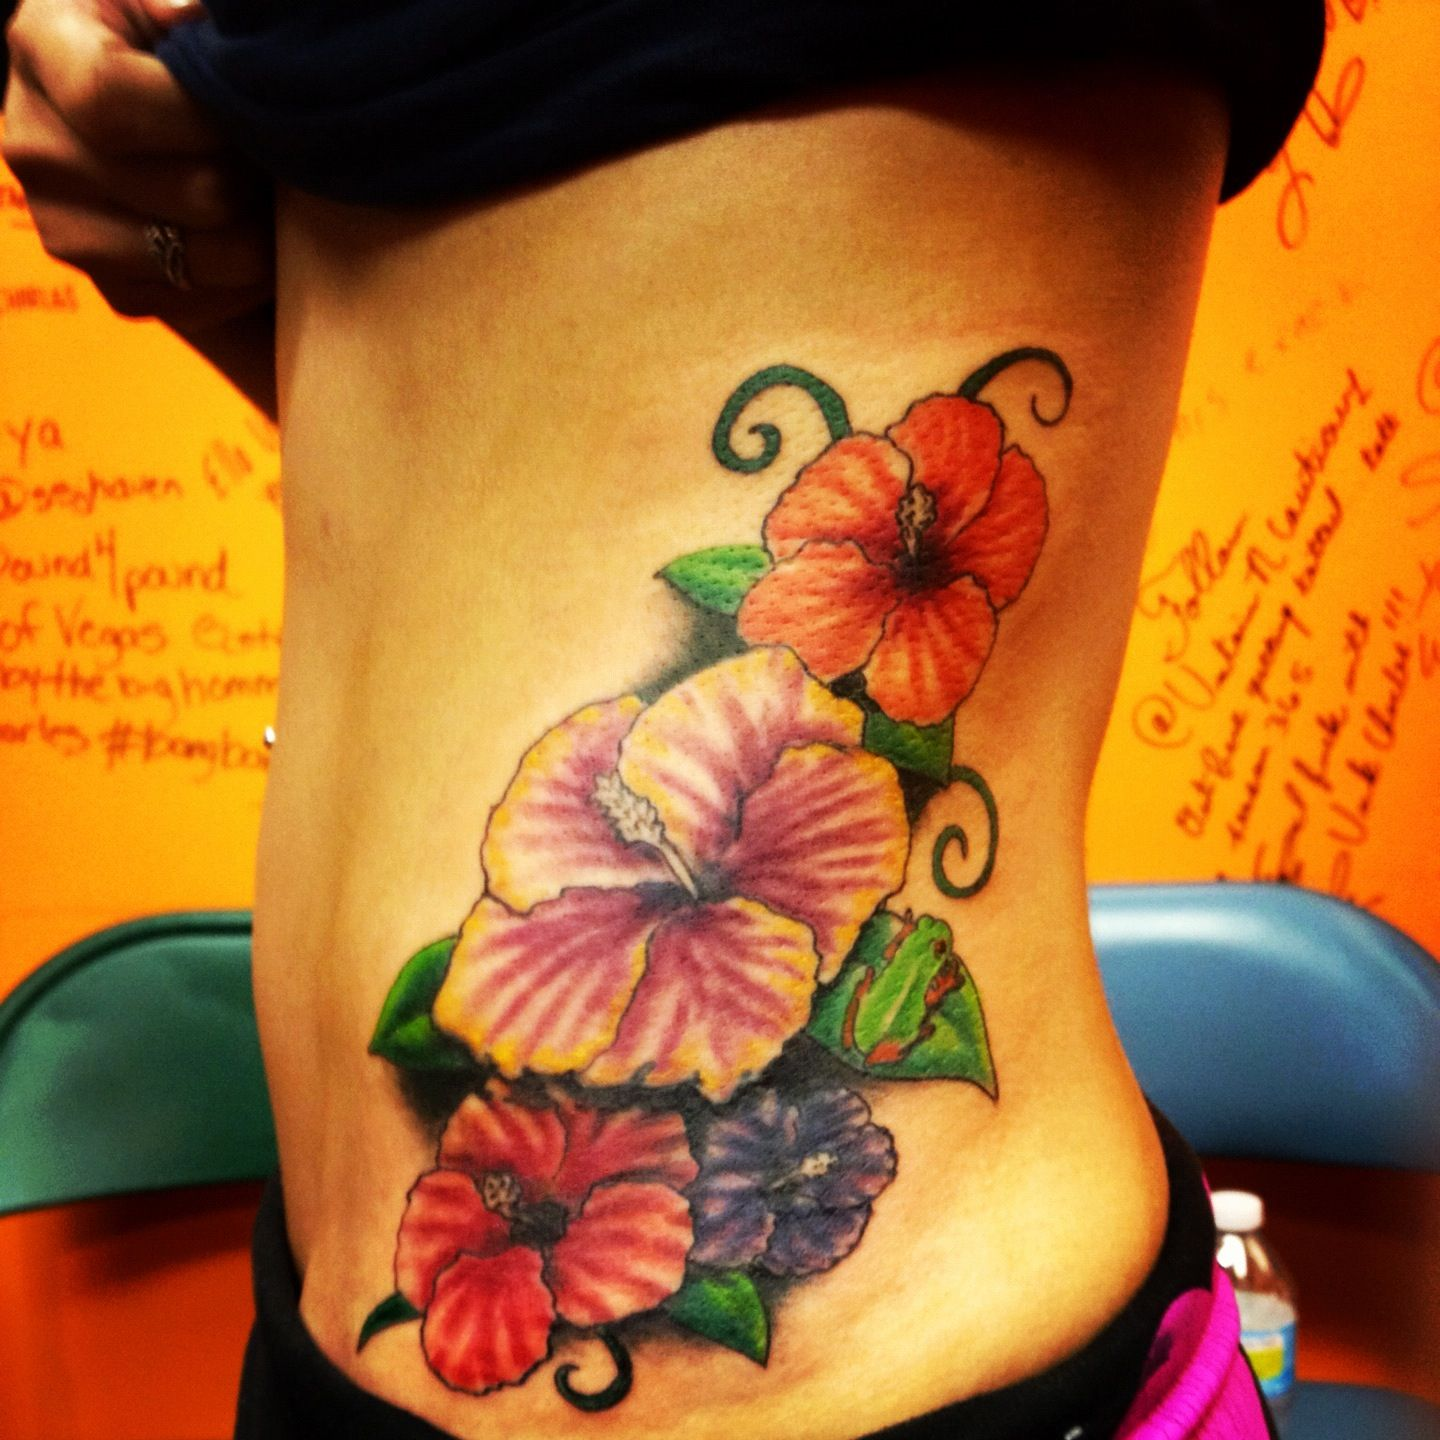 Taino Tattoo For Woman: Flor De Maga, The National Flower Of Puerto Rico. There's